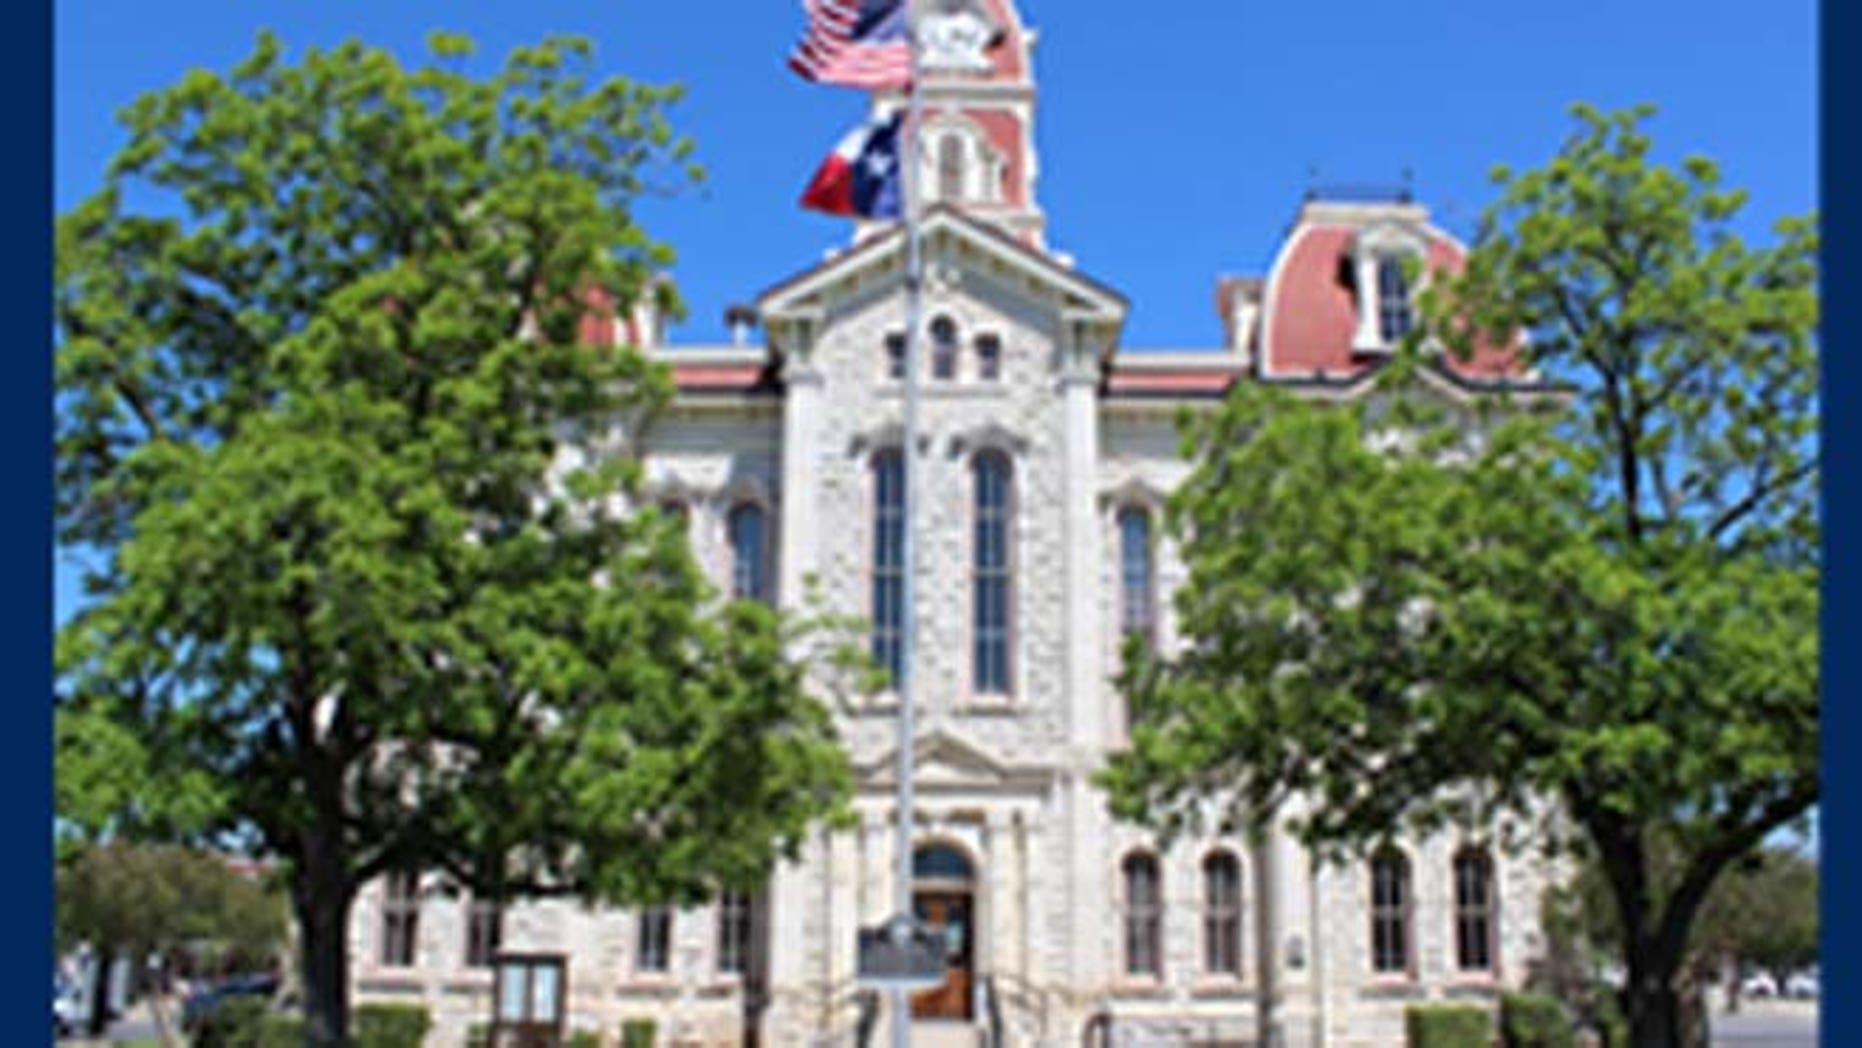 Parker County Court in Weatherford, Texas.